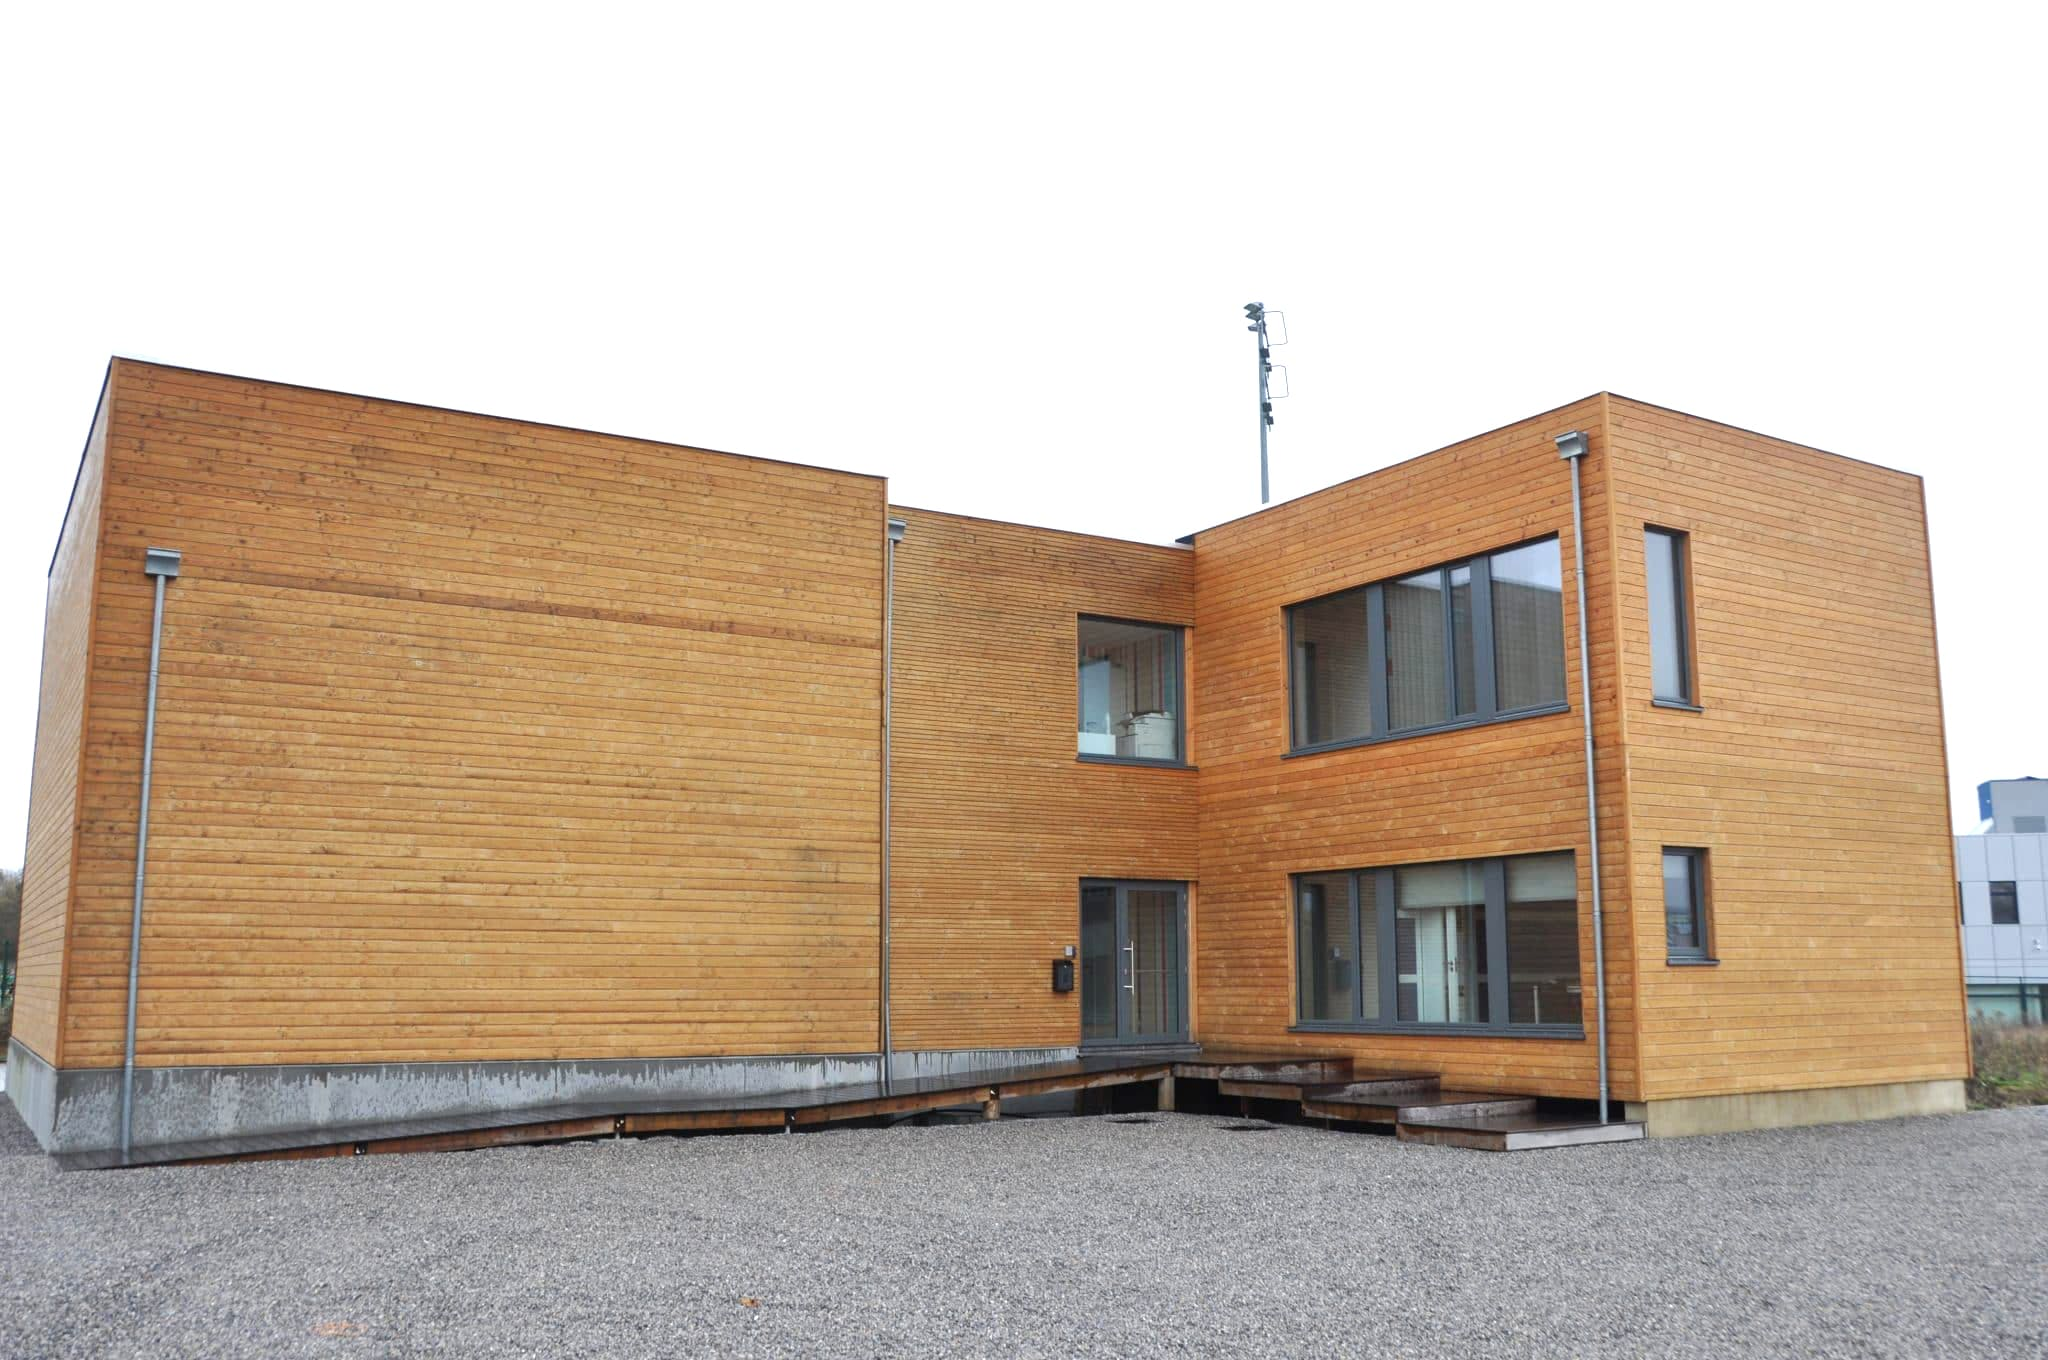 SI106 applied to wood cladding